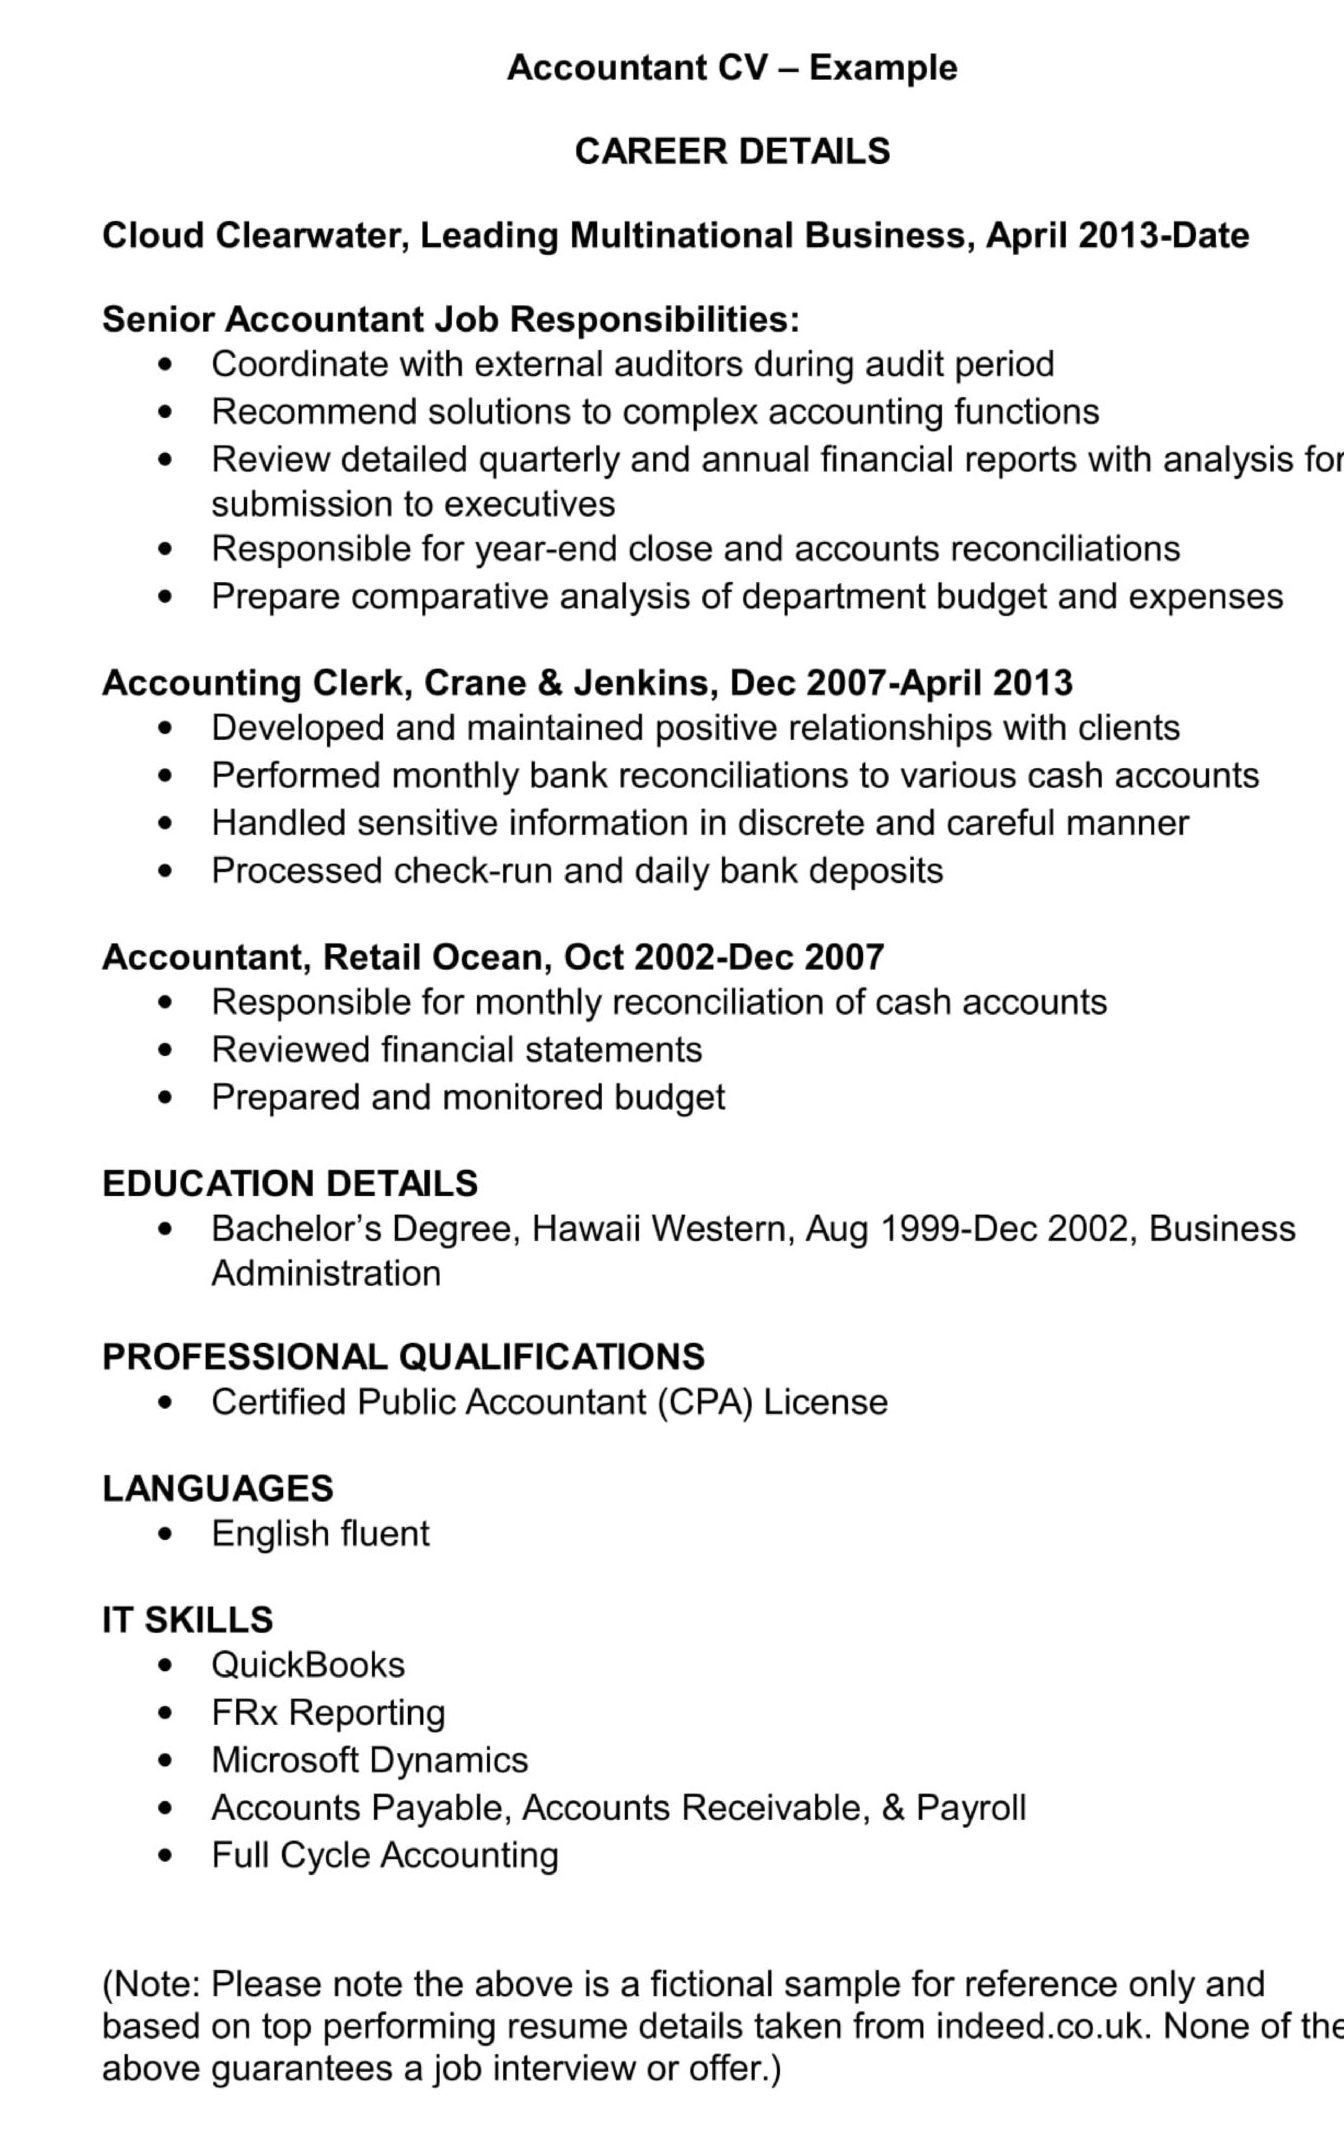 accountant cv template and examples renaix job description for resume scaled retail Resume Accountant Job Description For Resume